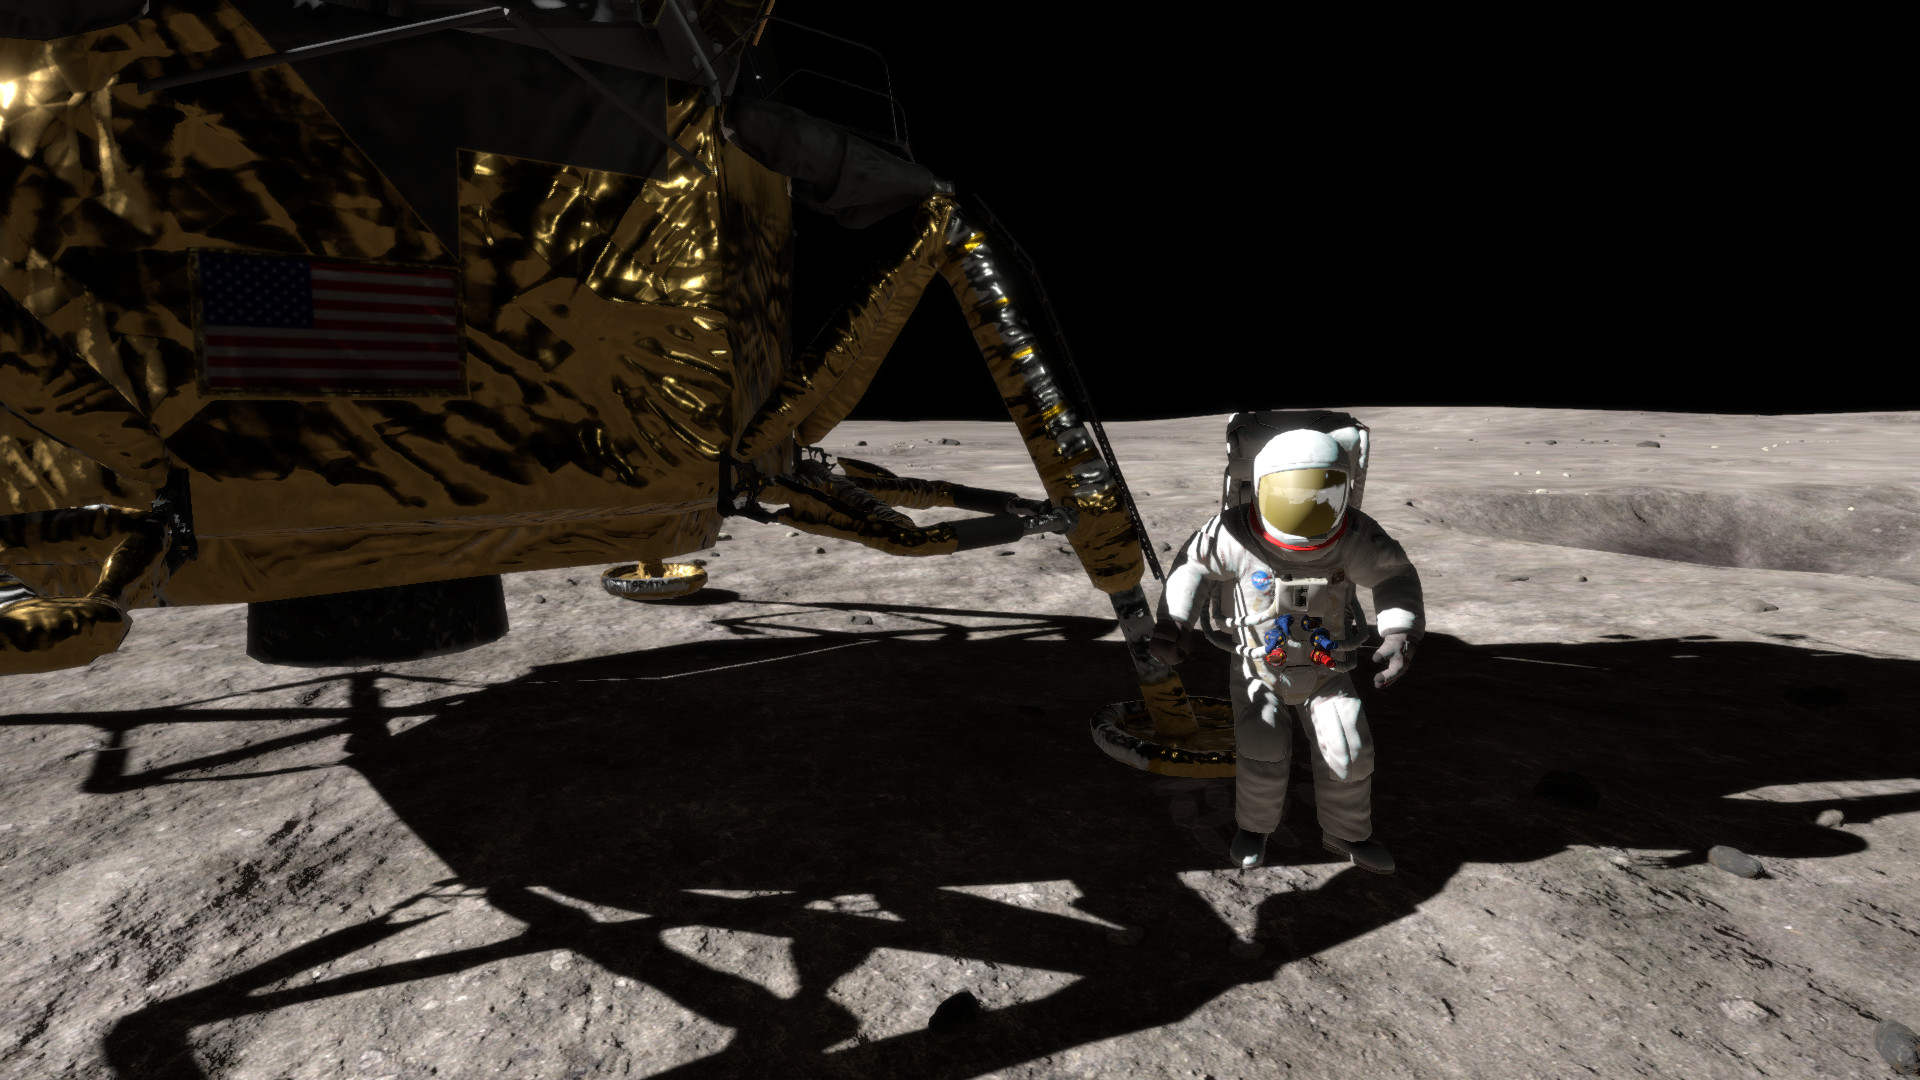 5 Great Ways to Celebrate the Moon Landing's 50th Anniversary in VR